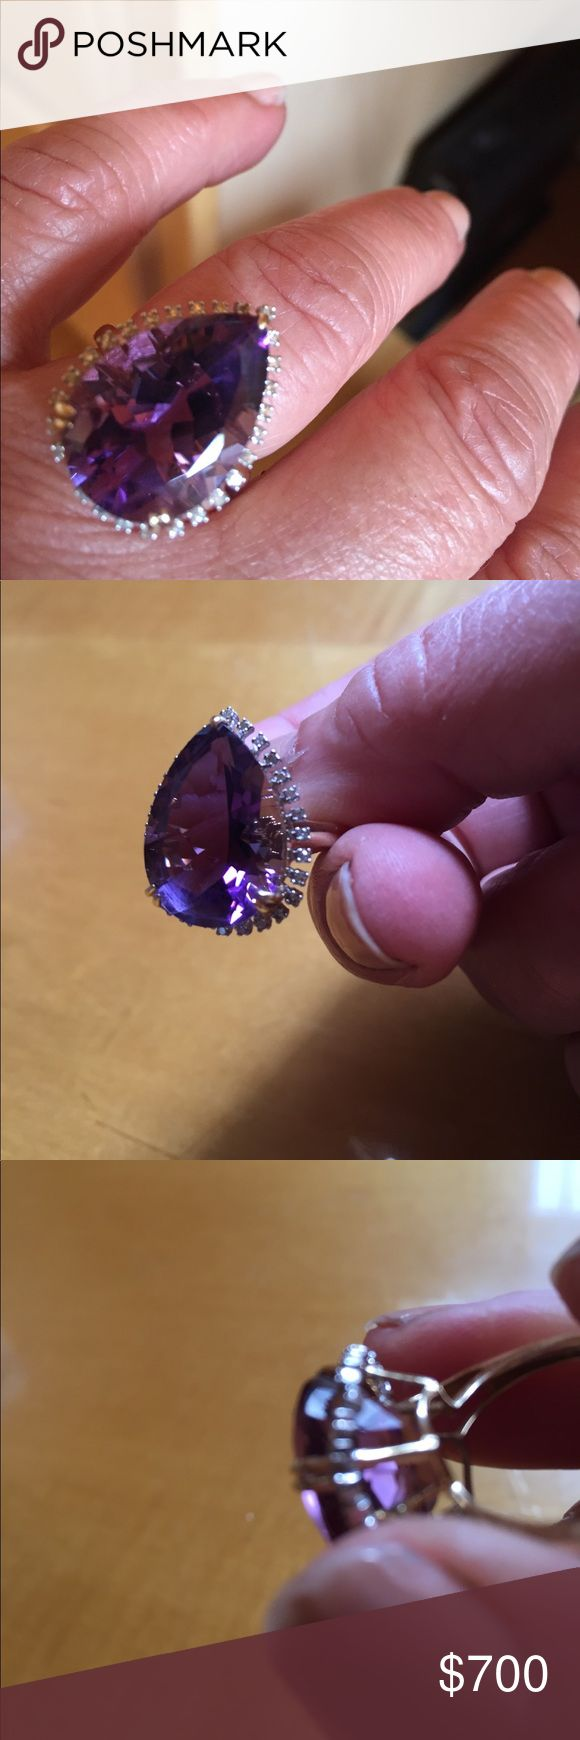 Amethyst and diamond ring 8.70 Ct pear shaped Amethyst ring. 1/10 Ct two diamond accents all around stone. 14 kt gold.  Serious jewelry buyers only. This ring is worth a fortune. Price is firm! Jewelry Rings